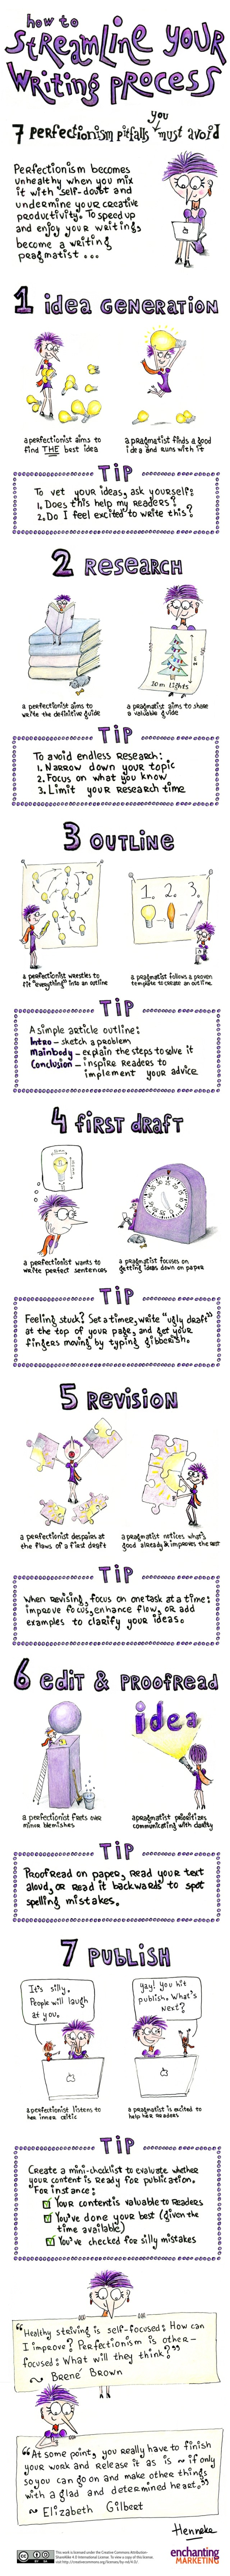 How to Streamline Your Writing Process